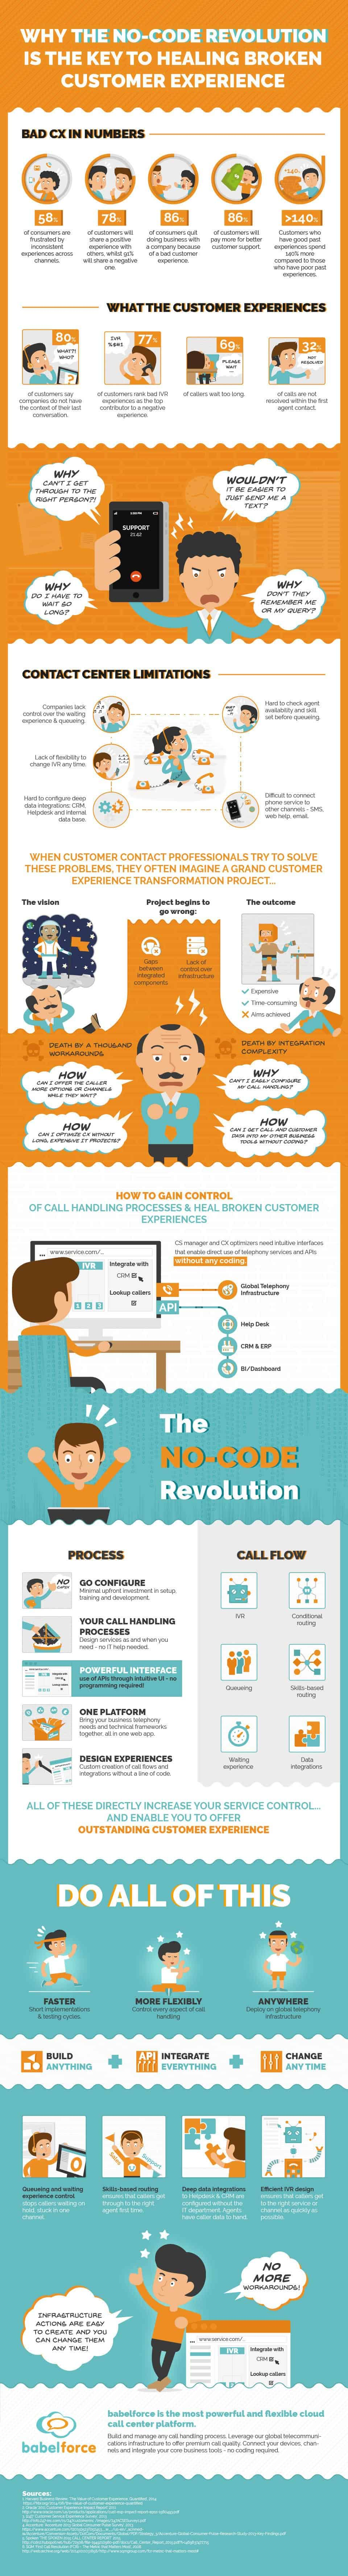 [Infographic] The NO Code Revolution: Heal Broken Customer Experiences